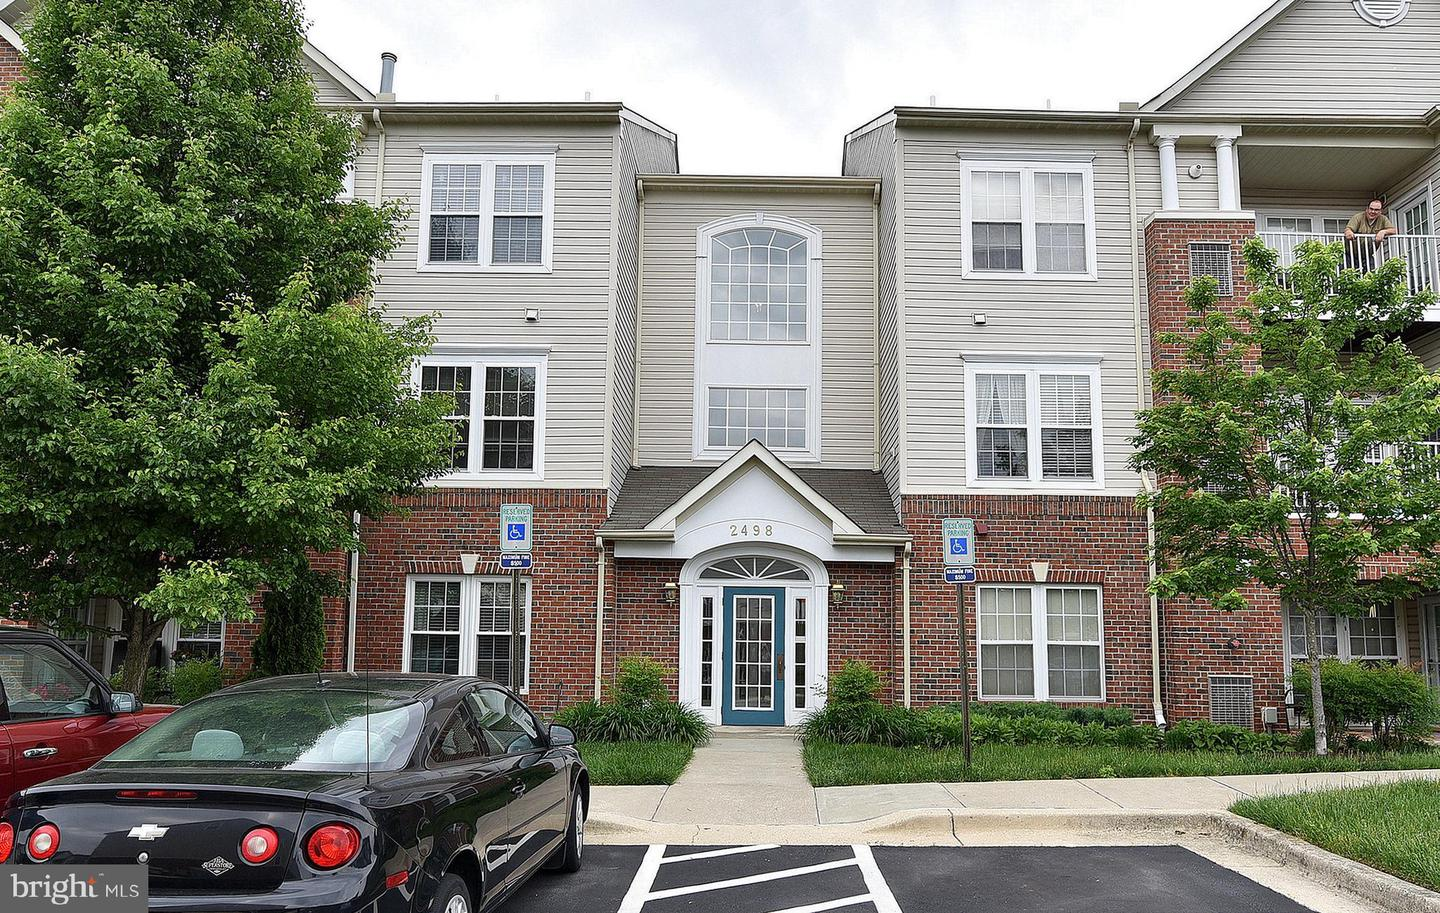 Single Family for Sale at 2498 Amber Orchard Ct E #103 2498 Amber Orchard Ct E #103 Odenton, Maryland 21113 United States